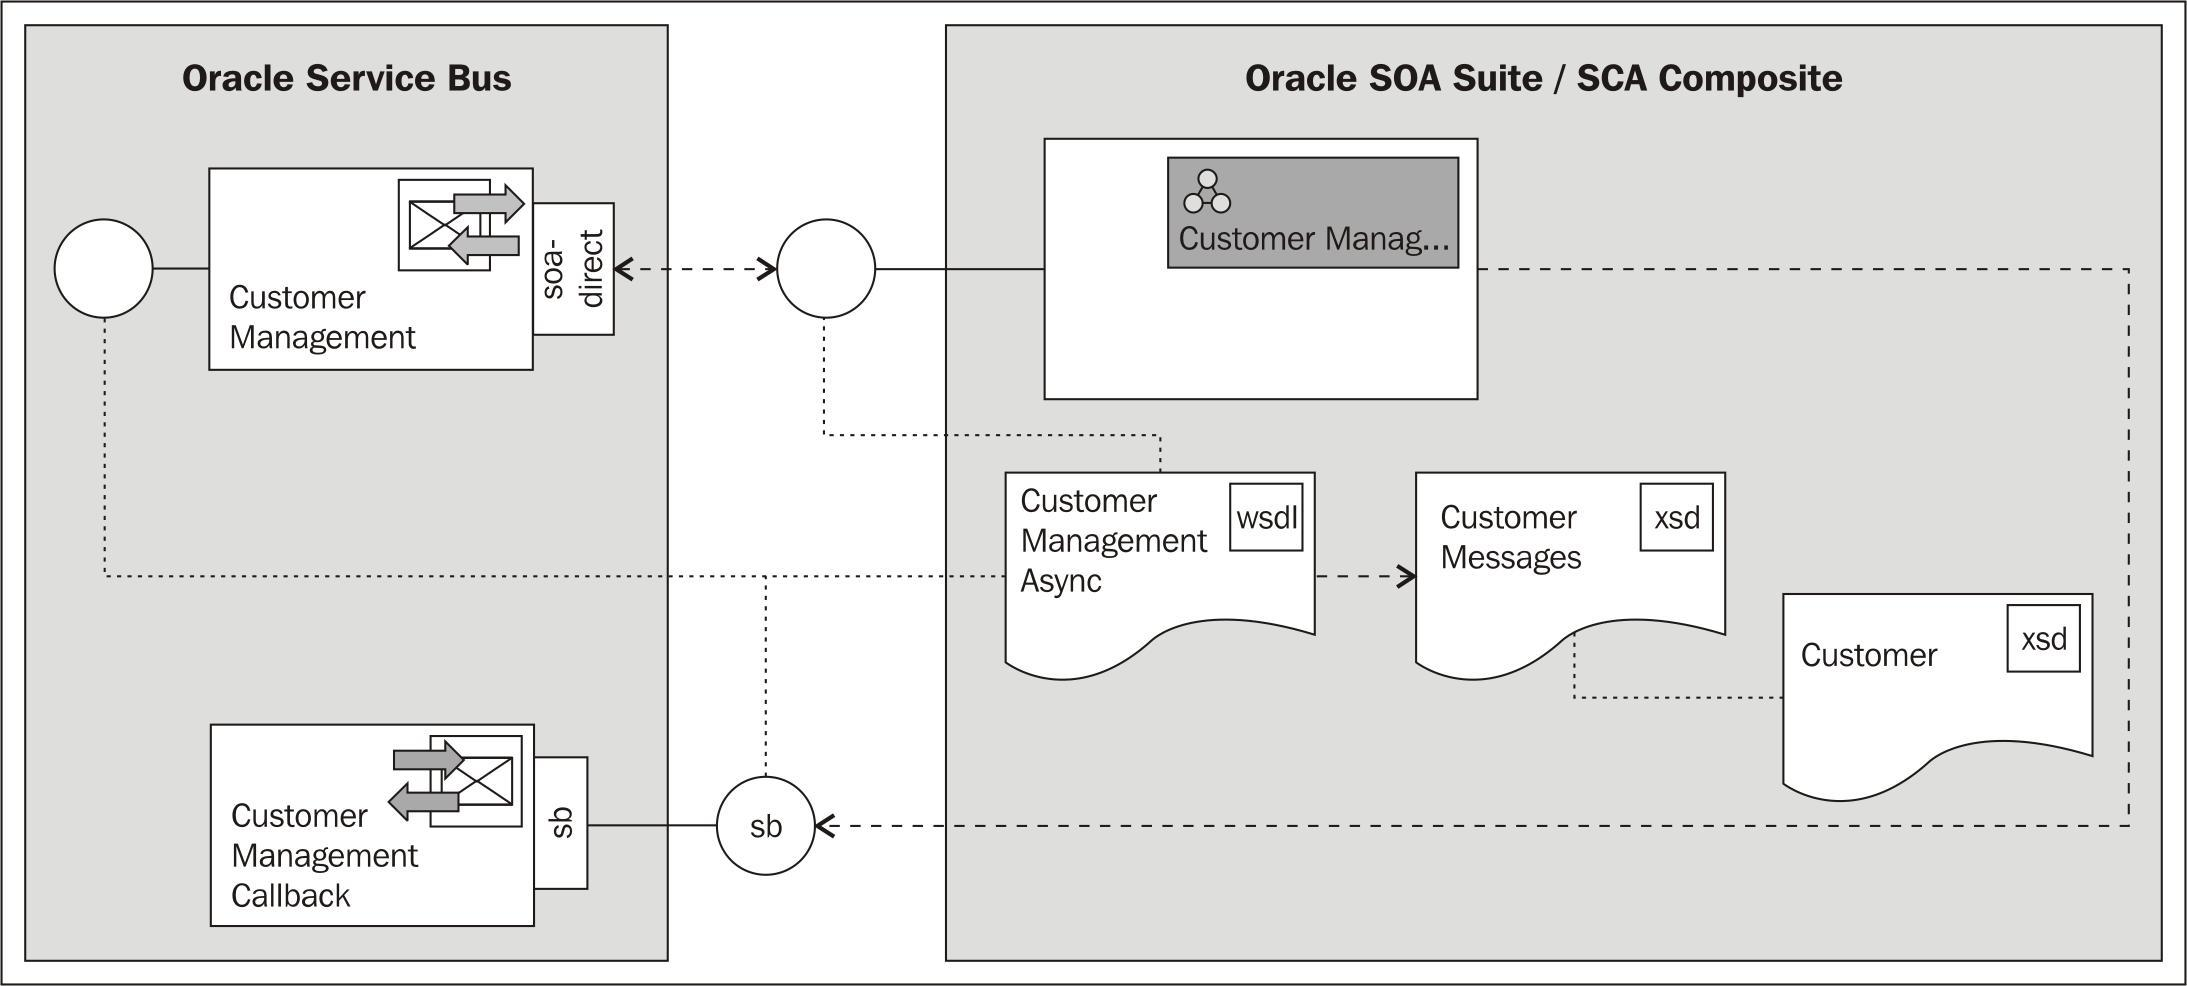 Invoking a SCA composite asynchronously from an OSB service